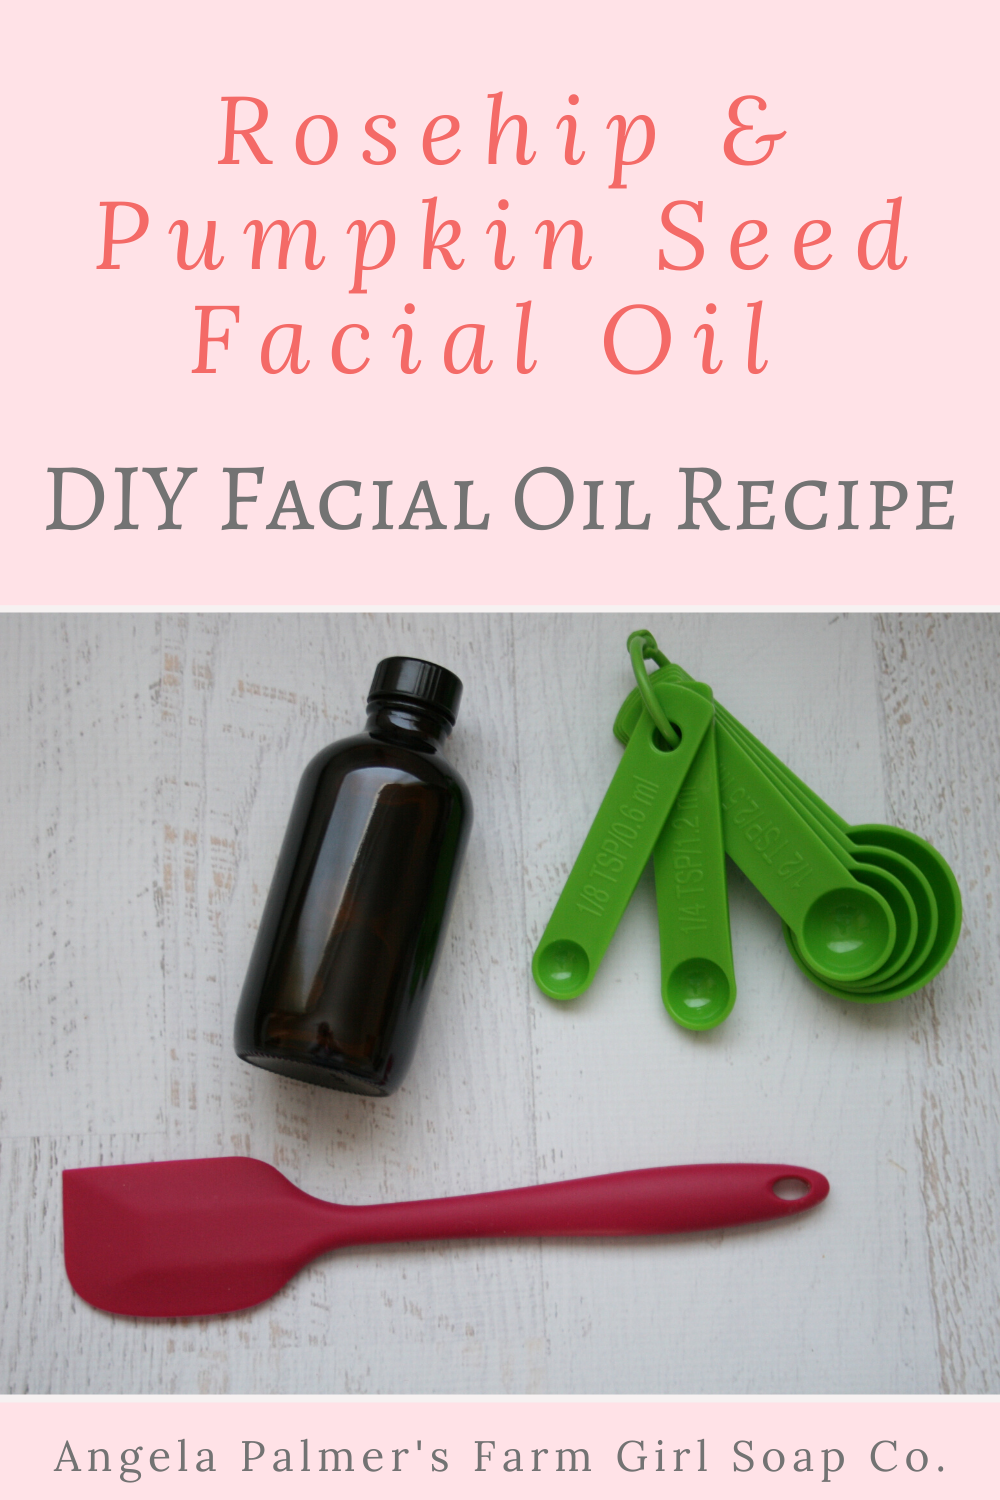 This easy to make DIY facial oil recipe uses anti-aging rosehip and pumpkin seed oil to nourish the skin and give it a dewy glow. Only two simple ingredients and you can make this nourishing DIY facial oil recipe. By Angela Palmer at Farm Girl Soap Co.